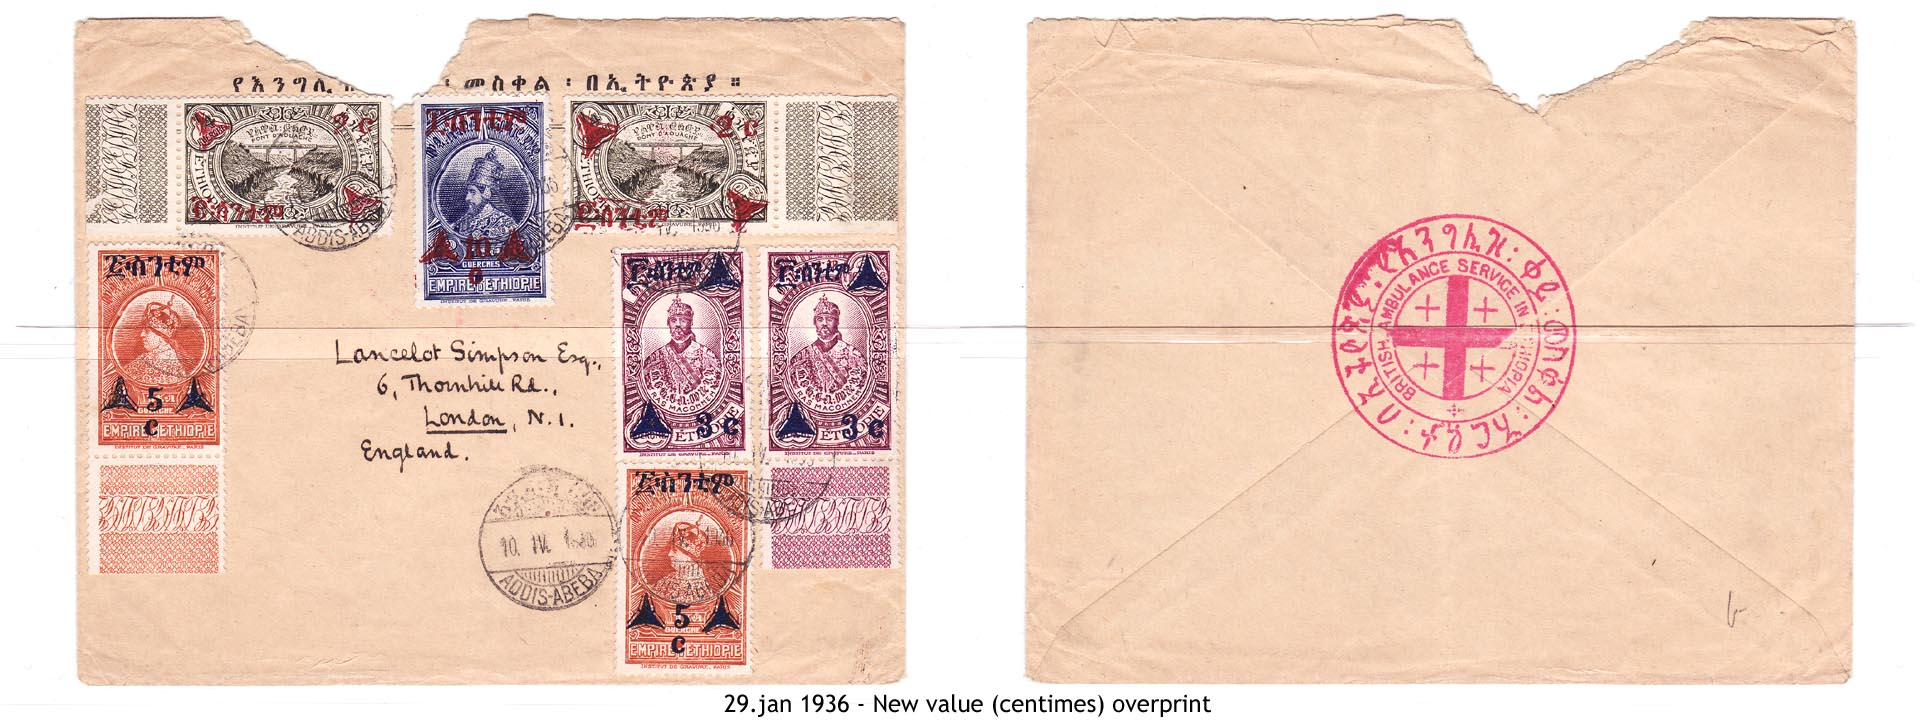 19360129 - New value (centimes) overprint